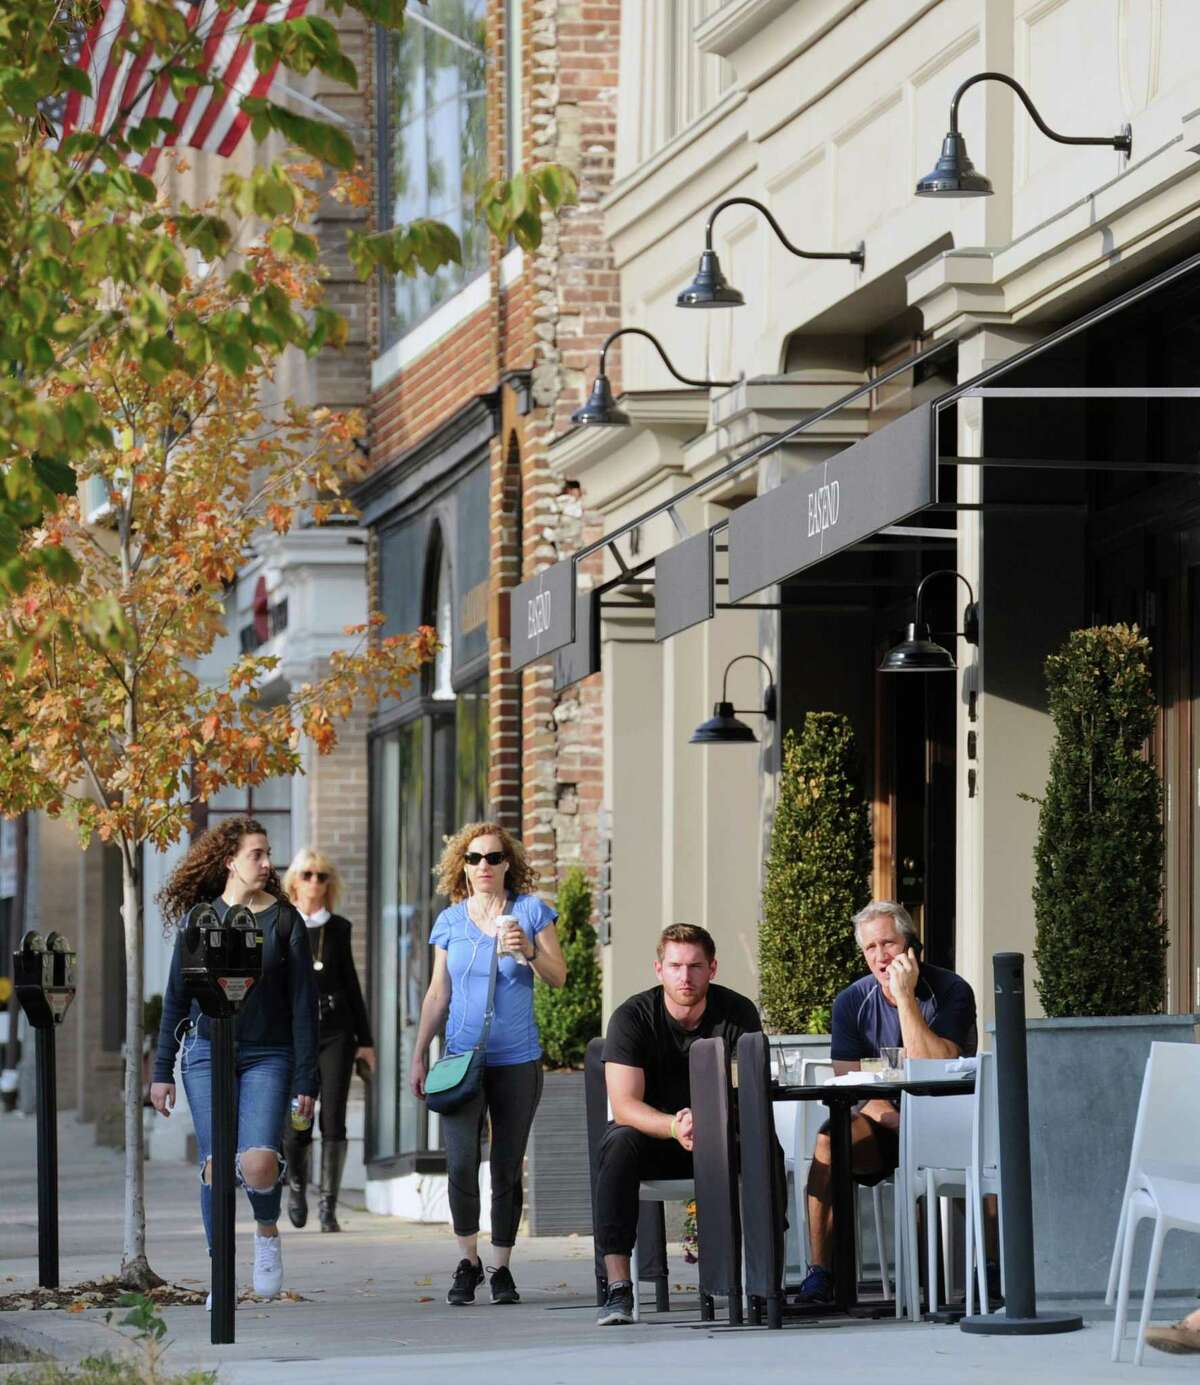 Greenwich recorded an unemployment rate of 3.5 percent in October 2017.